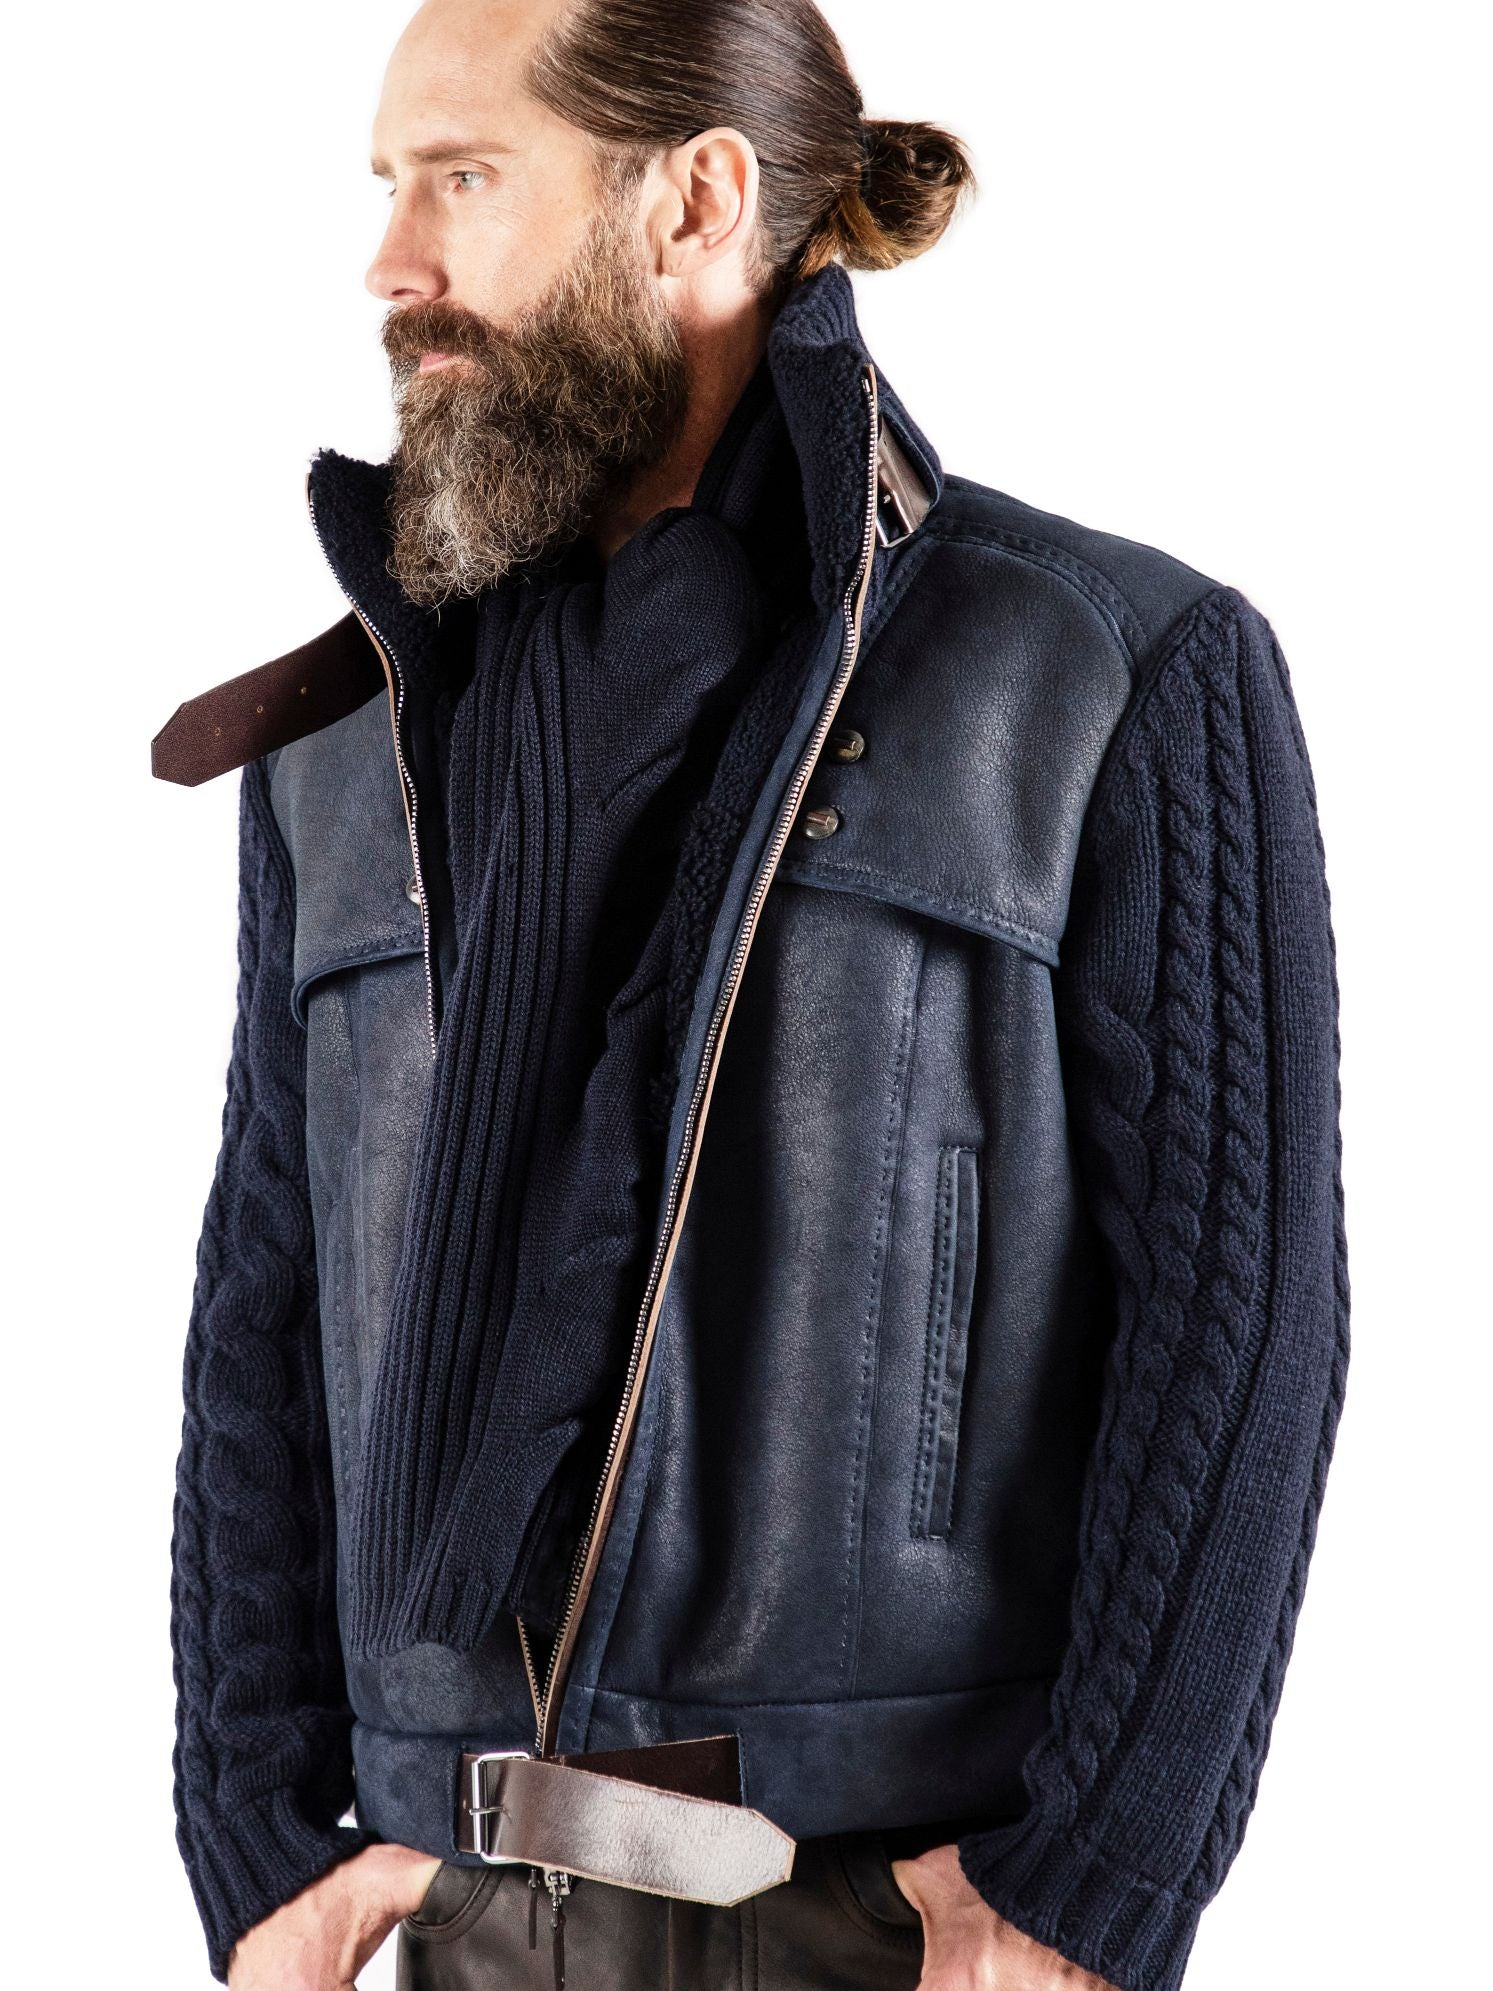 A one-of-a-kind blending of Spanish shearling with pure cashmere cable knit sleeves